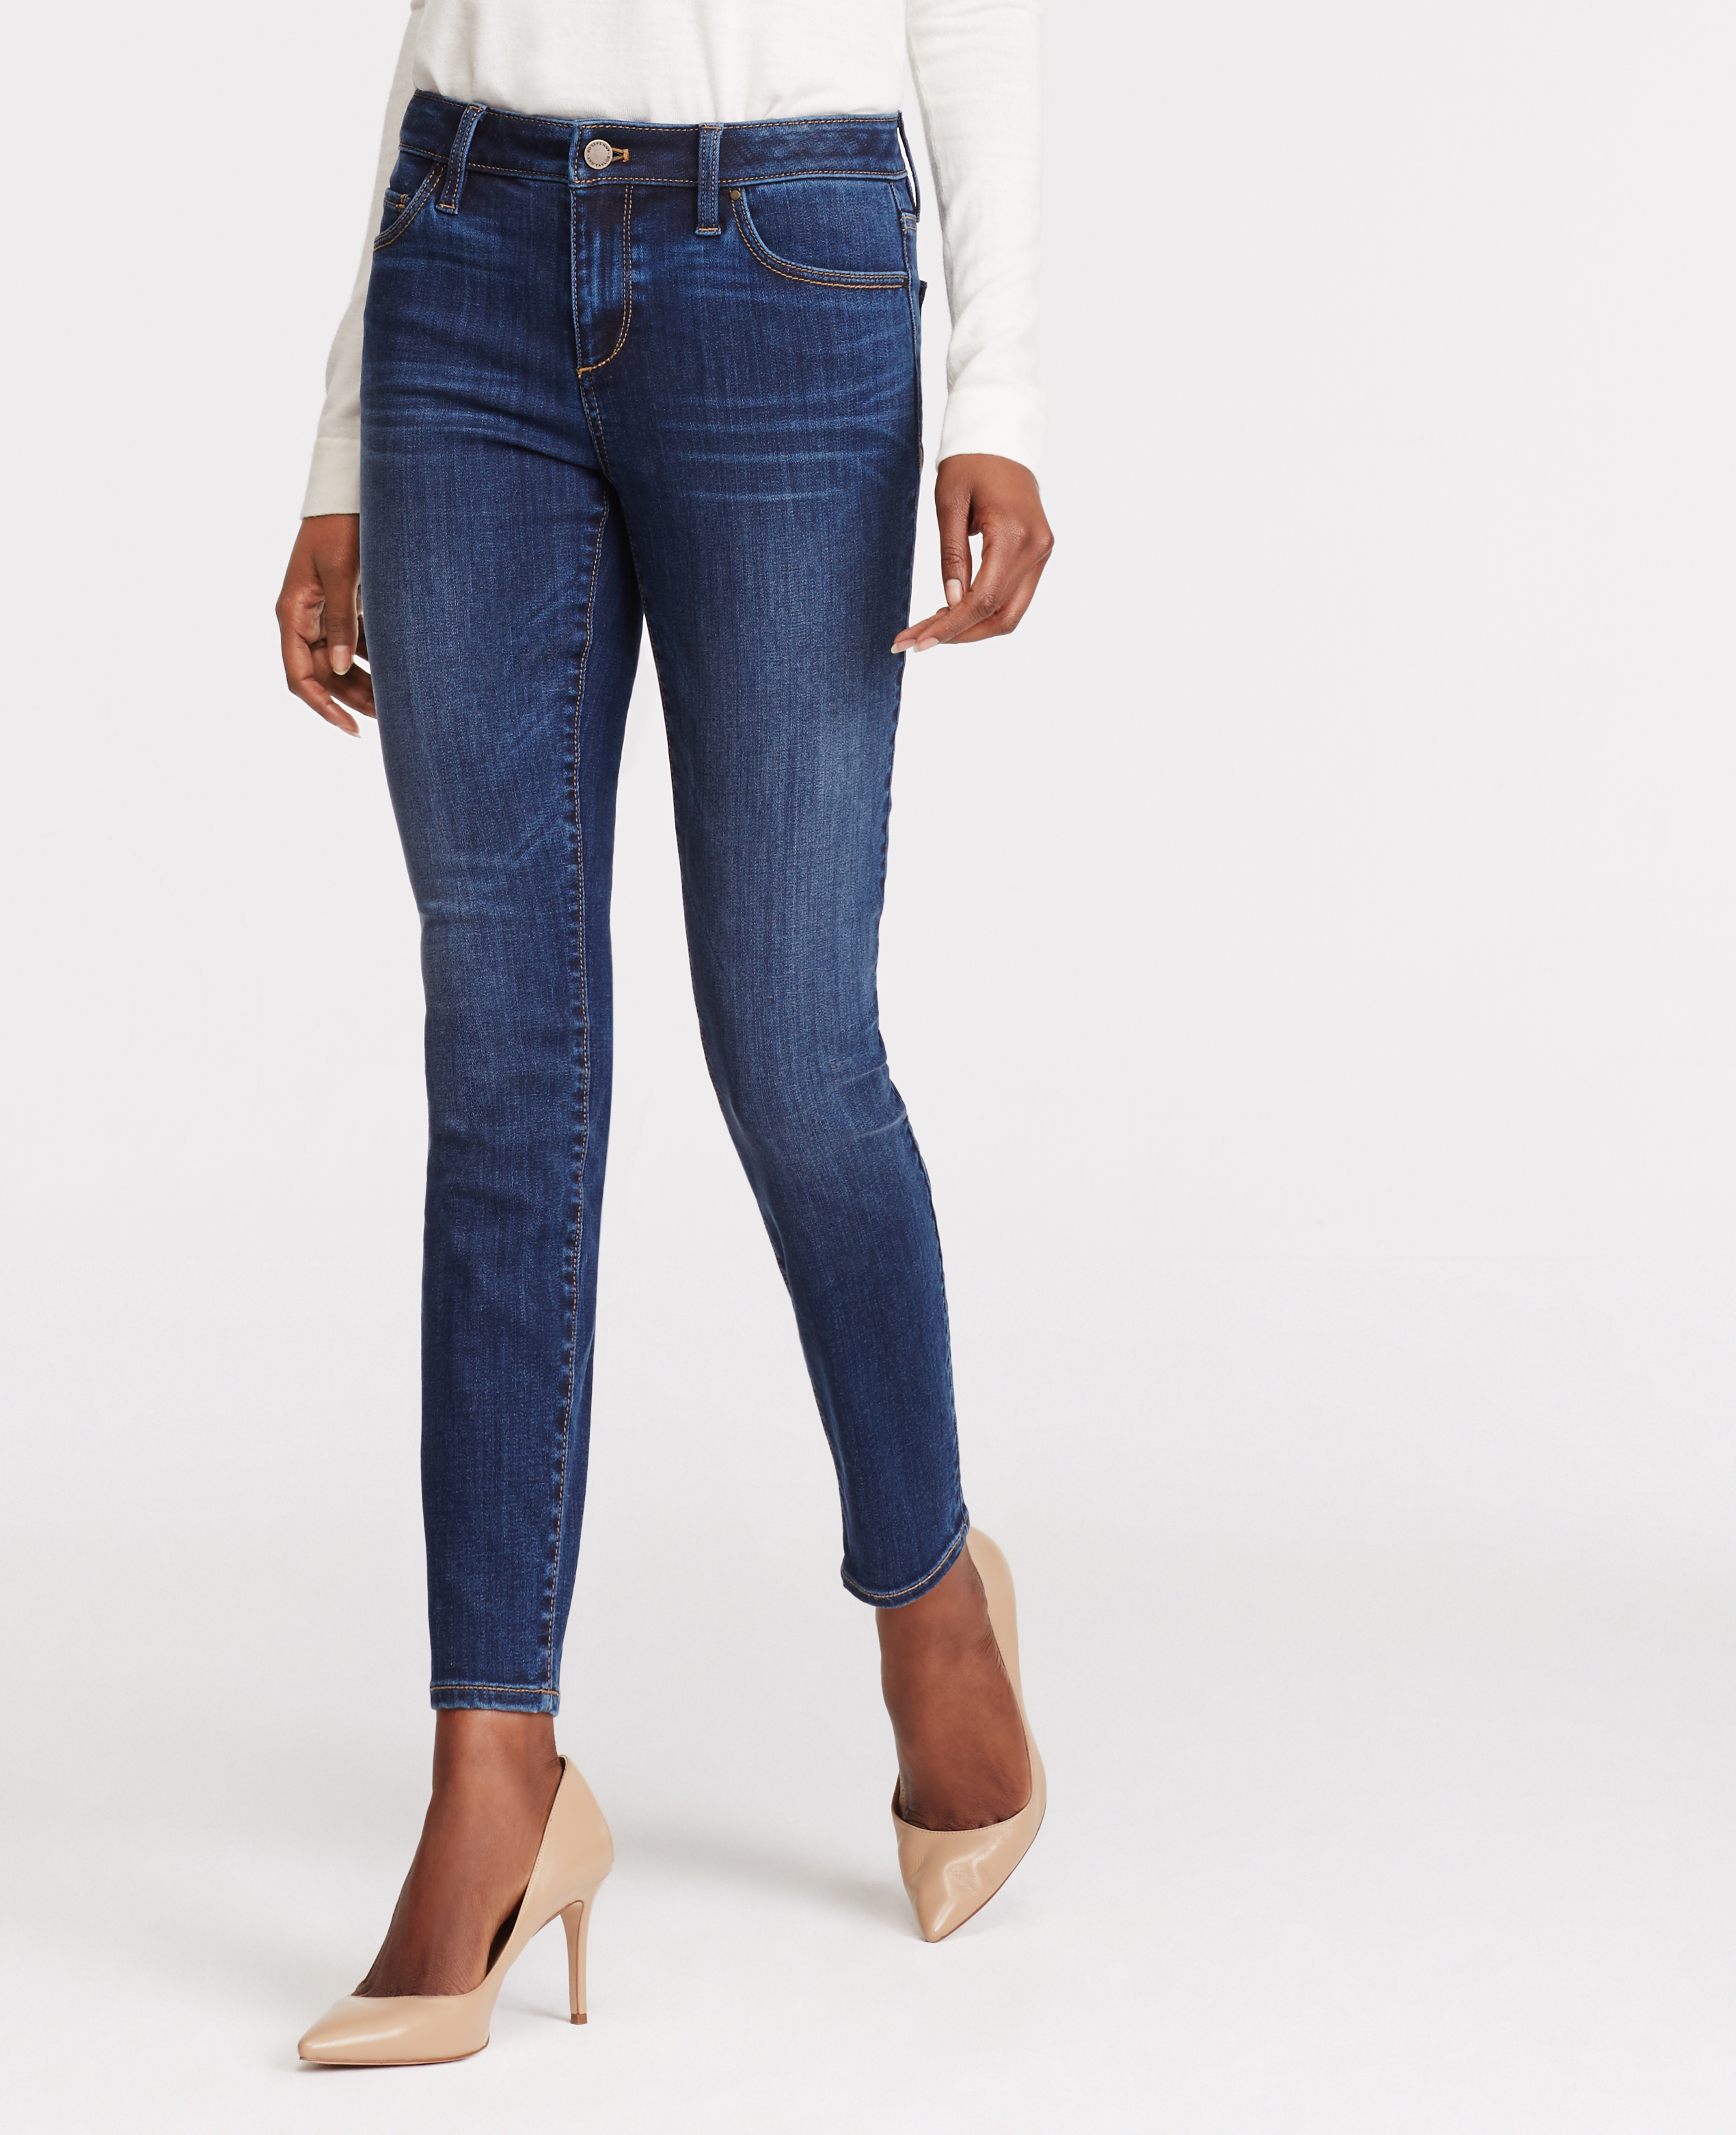 Hi Savana! It's a good question. I personally think that skinny jeans on curvy ladies can look really good, especially if you tuck them into boots!